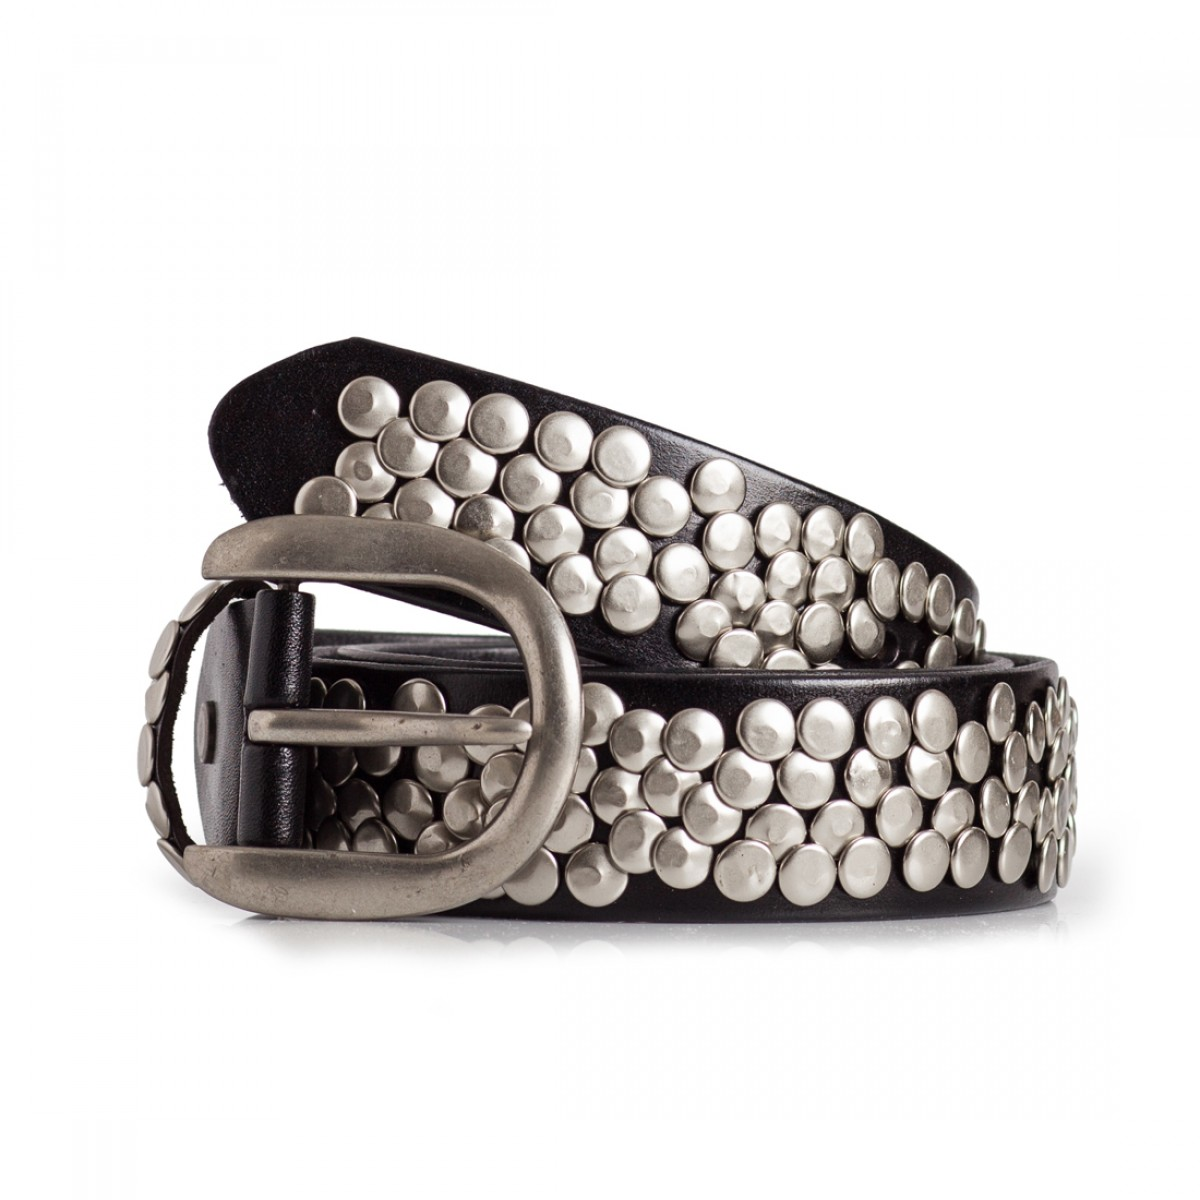 Find great deals on eBay for womens leather studded belts. Shop with confidence.